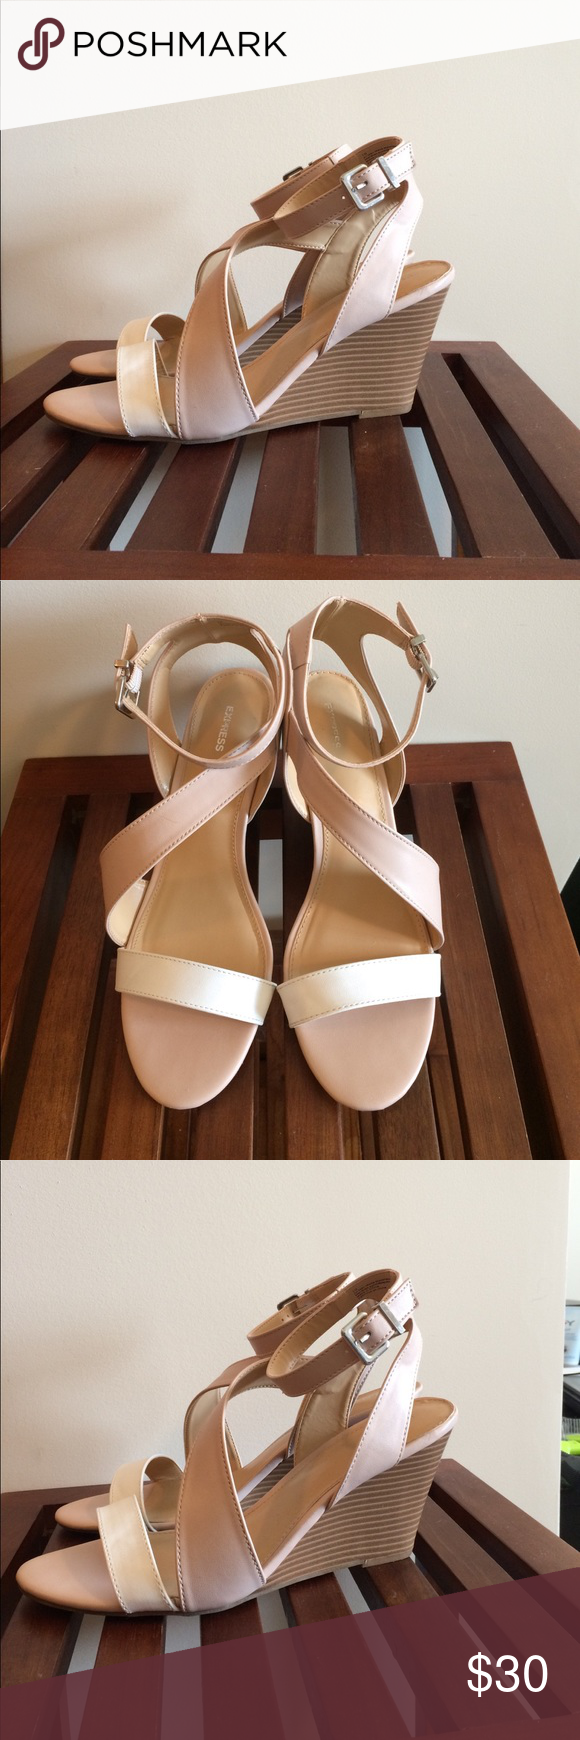 Express brand strappy wedge sandal 3 inch heel. Open toe sandal. Adjustable buckle ankle strap. I bought these beauties from Express and only wore them once! Perfect for spring and summer ☀️ They are a beautiful cream/beige color with a white strap across the front. Express Shoes Wedges